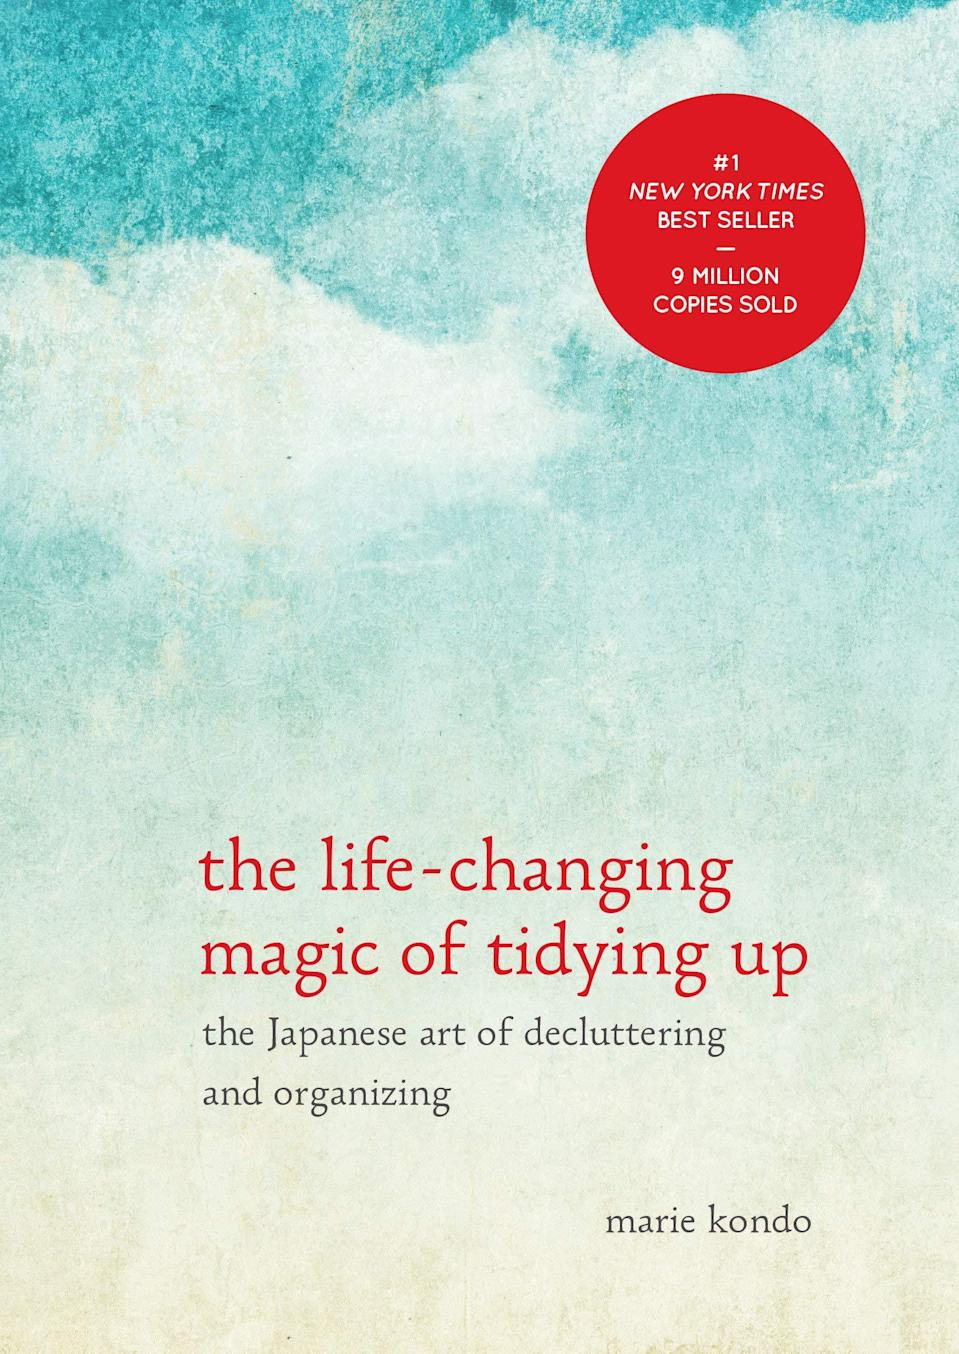 """<h2><em>The Life-Changing Magic Of Tidying Up</em></h2><br>A classic gift for a new organizer, this is a must-read.<br><br><strong>Ten Speed Press</strong> The Life-Changing Magic of Tidying Up: The Japanese Art of Decluttering and Organizing, $, available at <a href=""""https://www.amazon.com/Life-Changing-Magic-Tidying-Decluttering-Organizing/dp/1607747308"""" rel=""""nofollow noopener"""" target=""""_blank"""" data-ylk=""""slk:Amazon"""" class=""""link rapid-noclick-resp"""">Amazon</a>"""